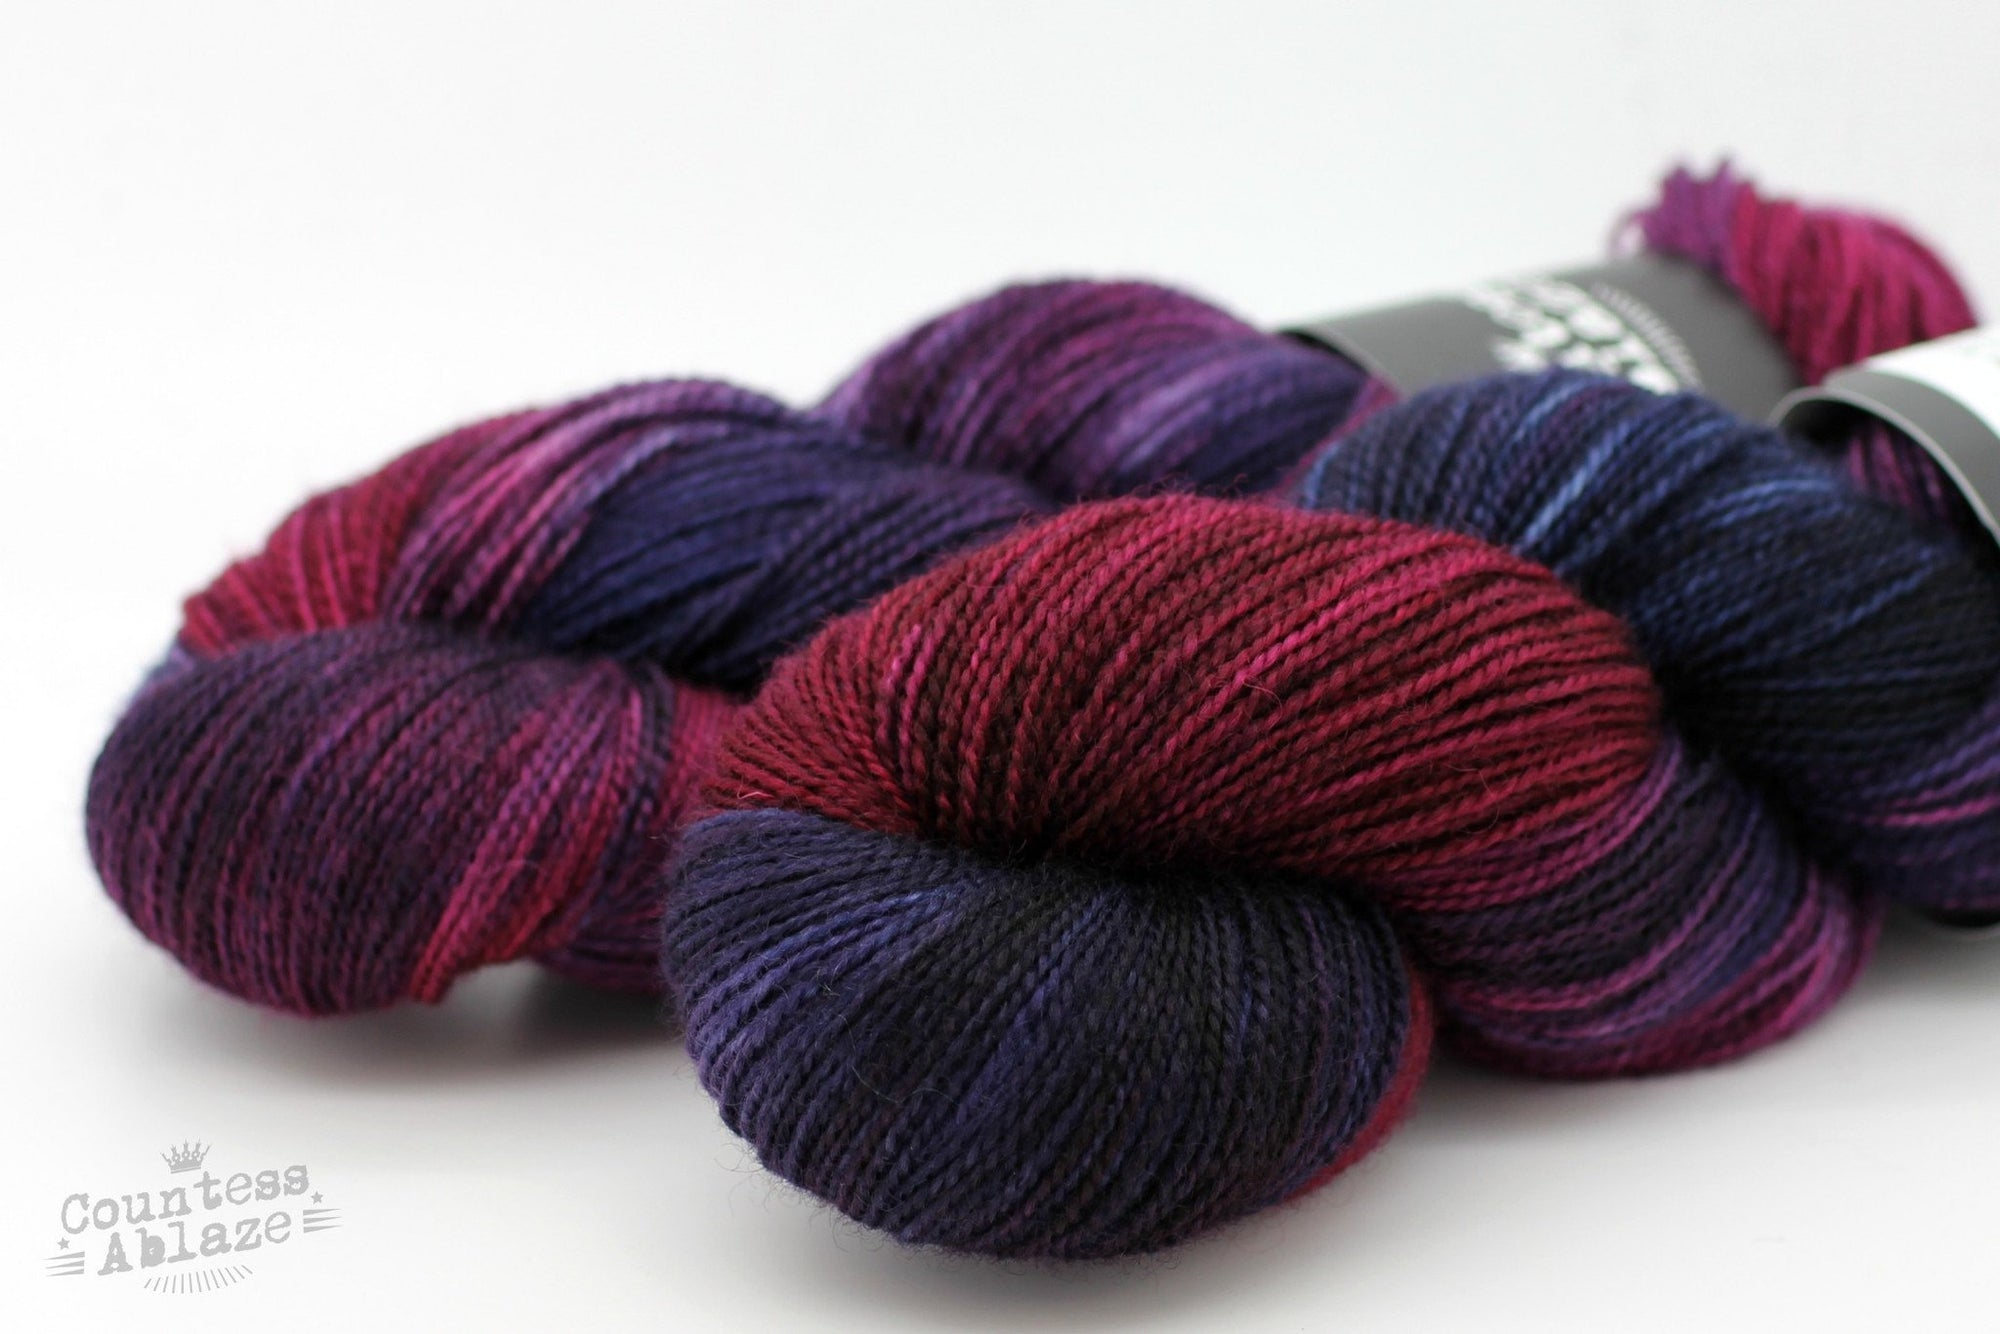 Colourway : Only When Invited | Countess Ablaze